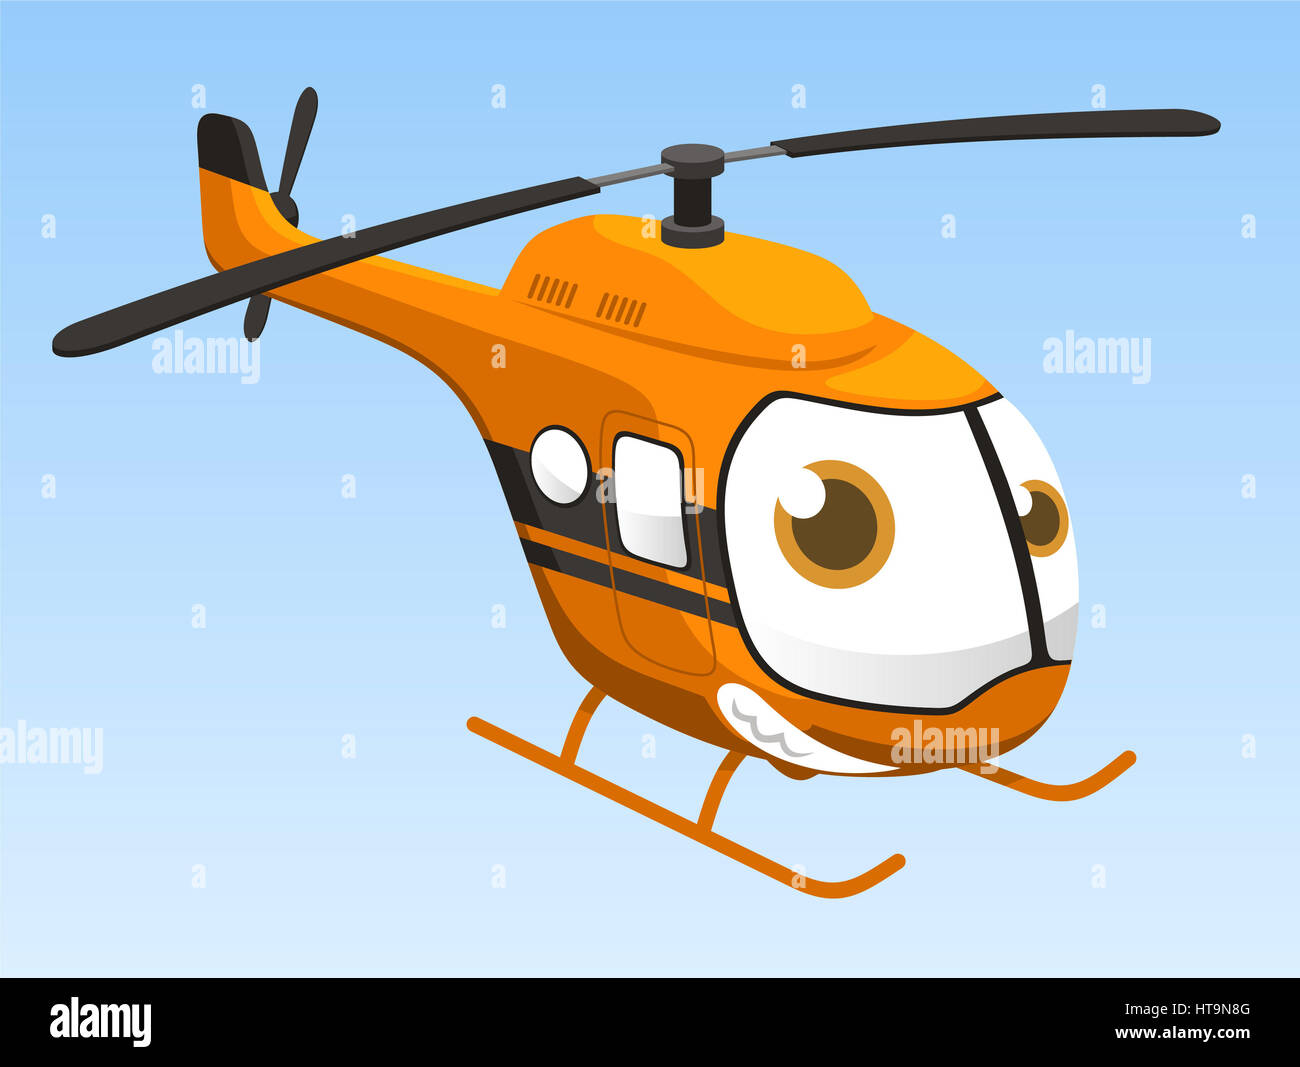 The Best Flying Helicopter Cartoon Images PNG